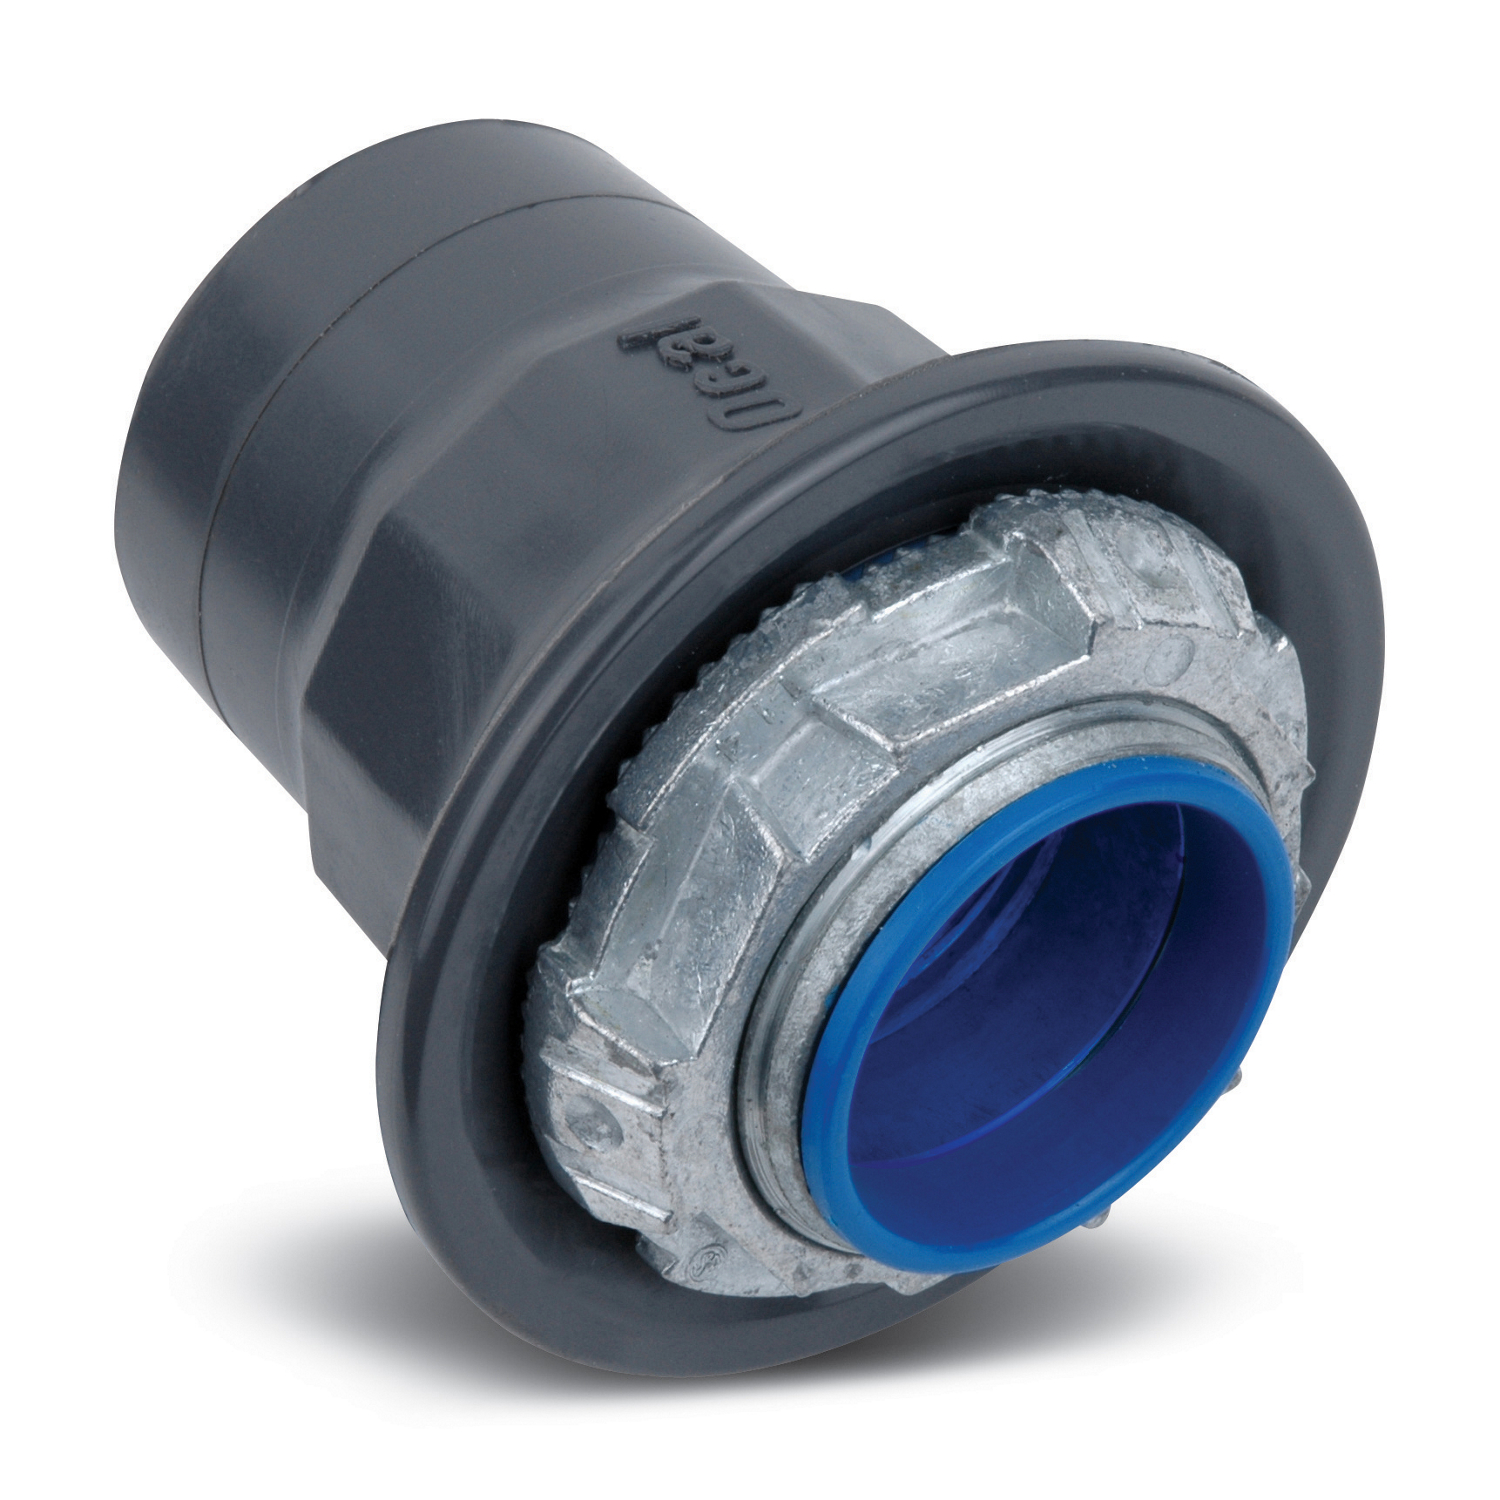 Ocal® Ocal-Blue™ HUB3/4-G Knockout Hub With Thermoplastic Insulated Throat, 3/4 in, For Use With Conduit Body and Fitting, Zinc, PVC Coated